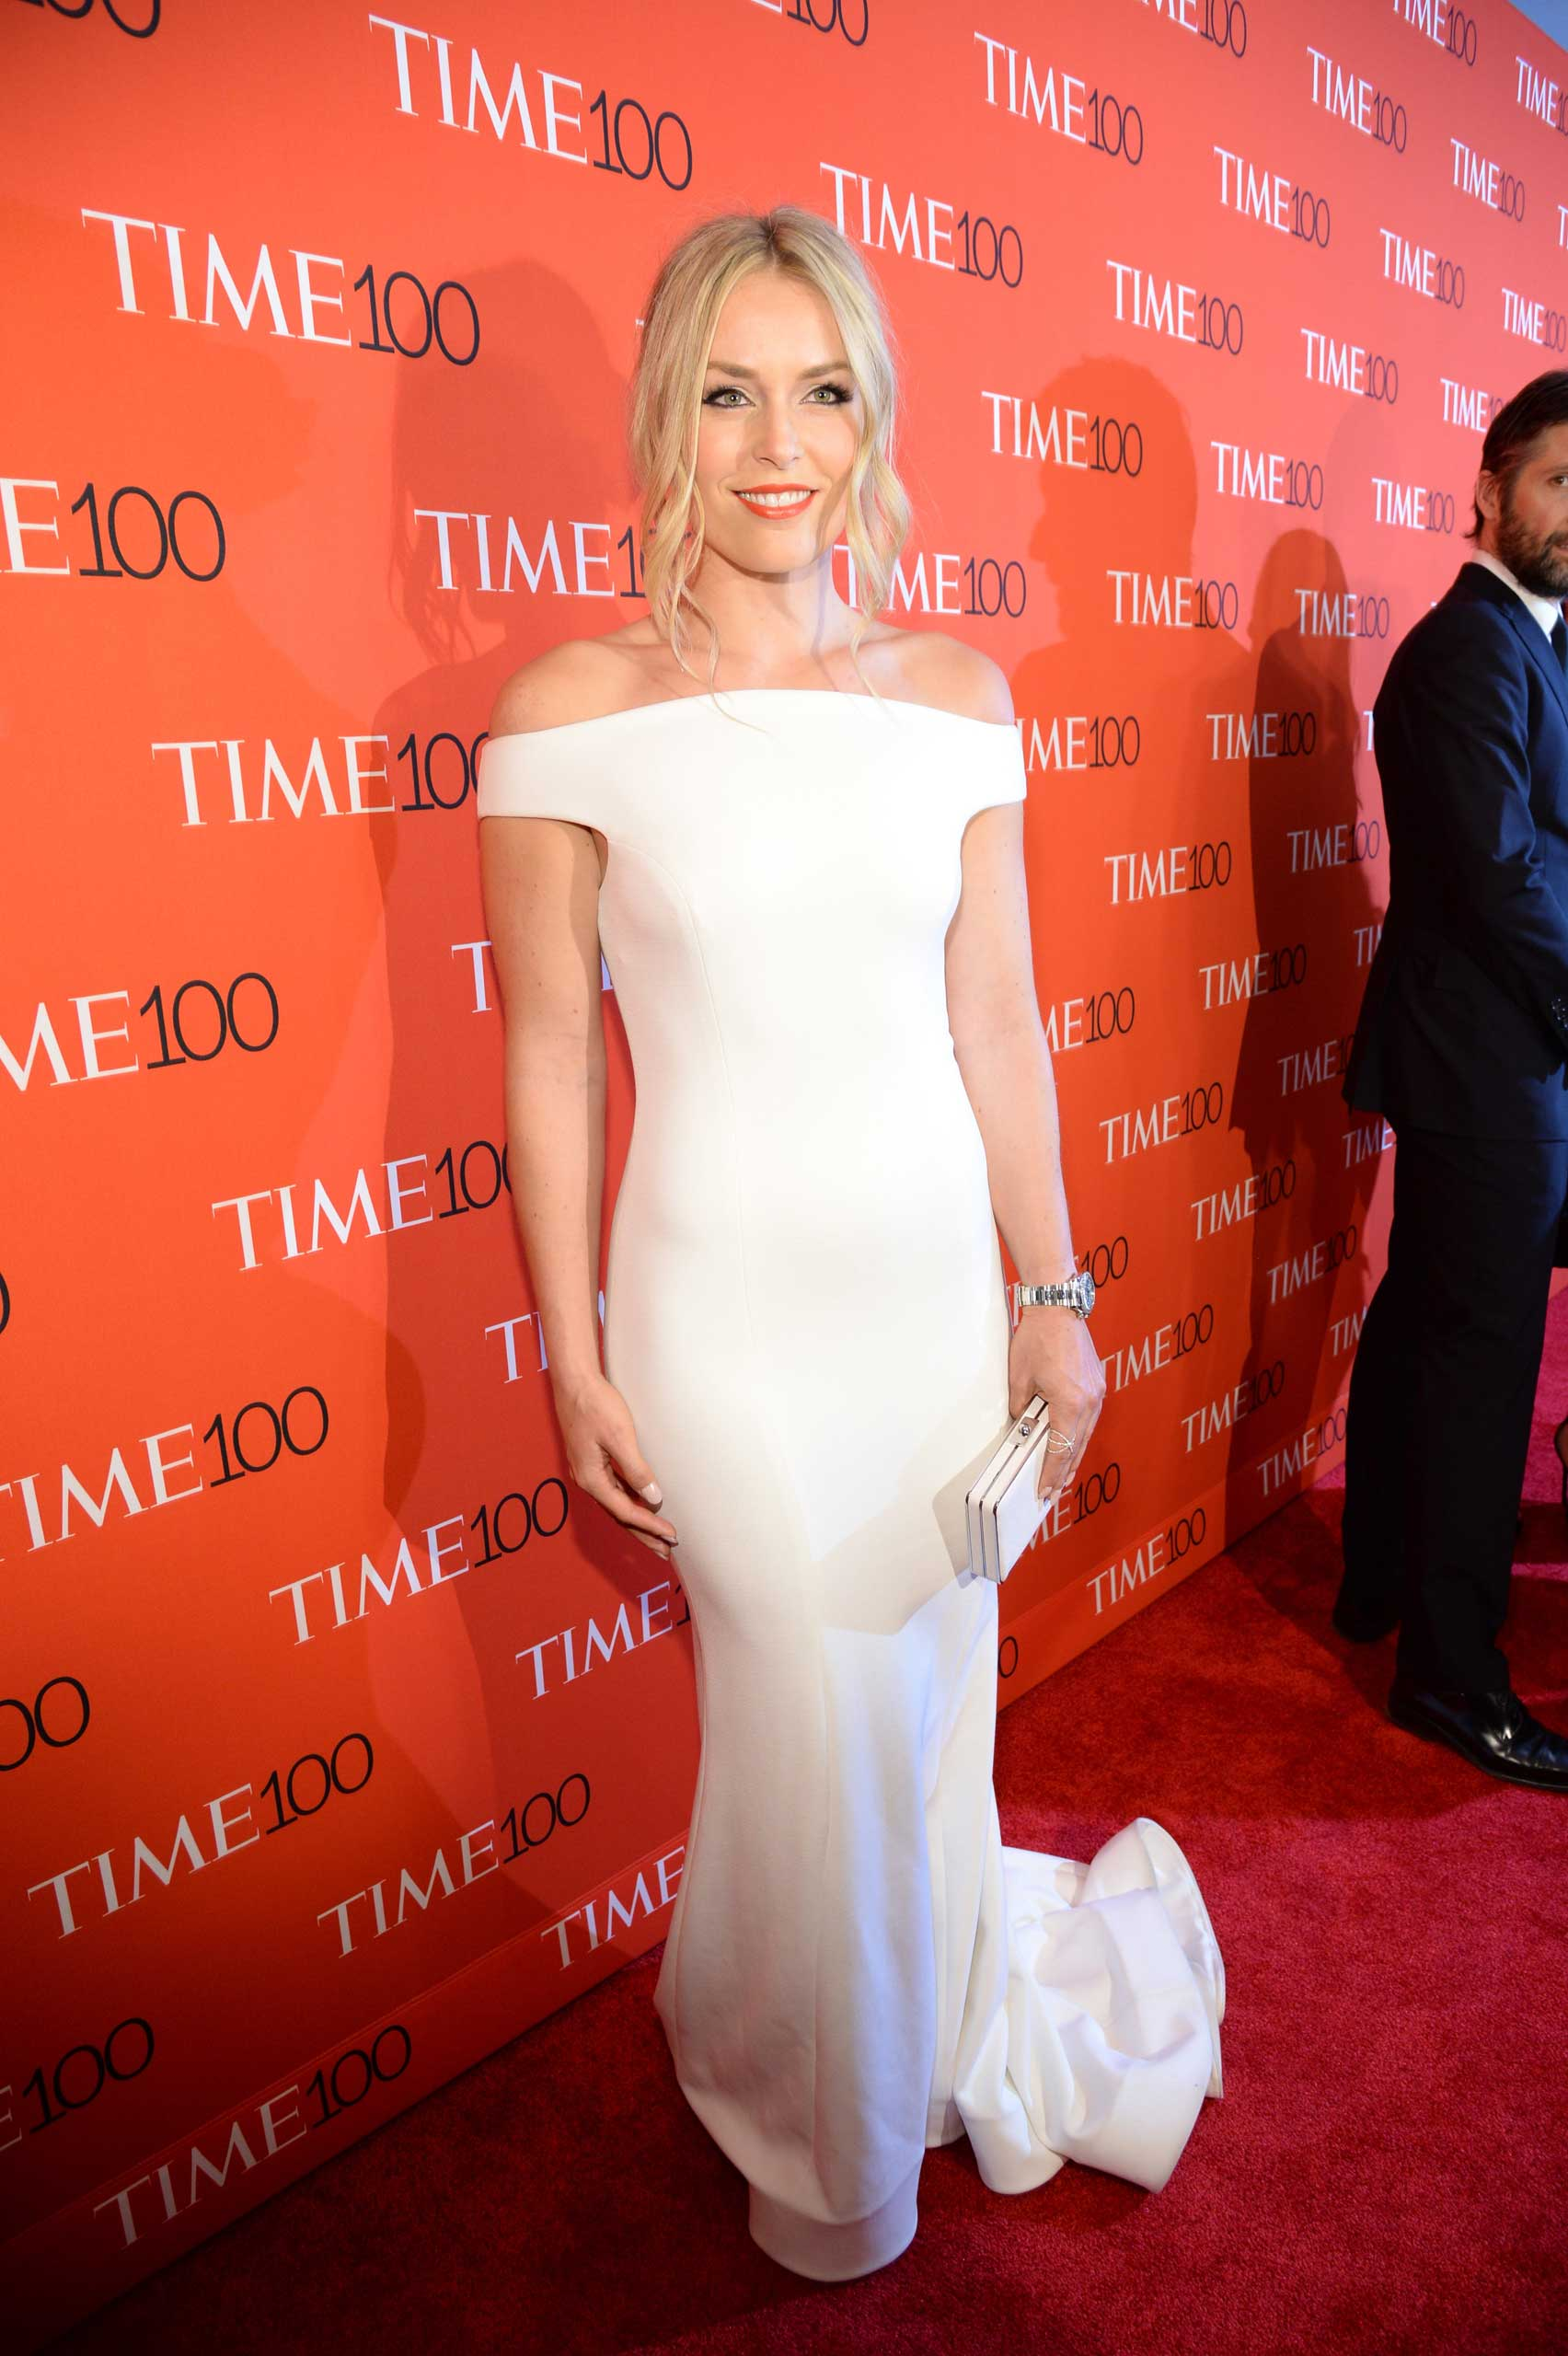 Lindsey Vonn attends the TIME 100 Gala at Jazz at Lincoln Center in New York, NY on Apr. 21, 2015.